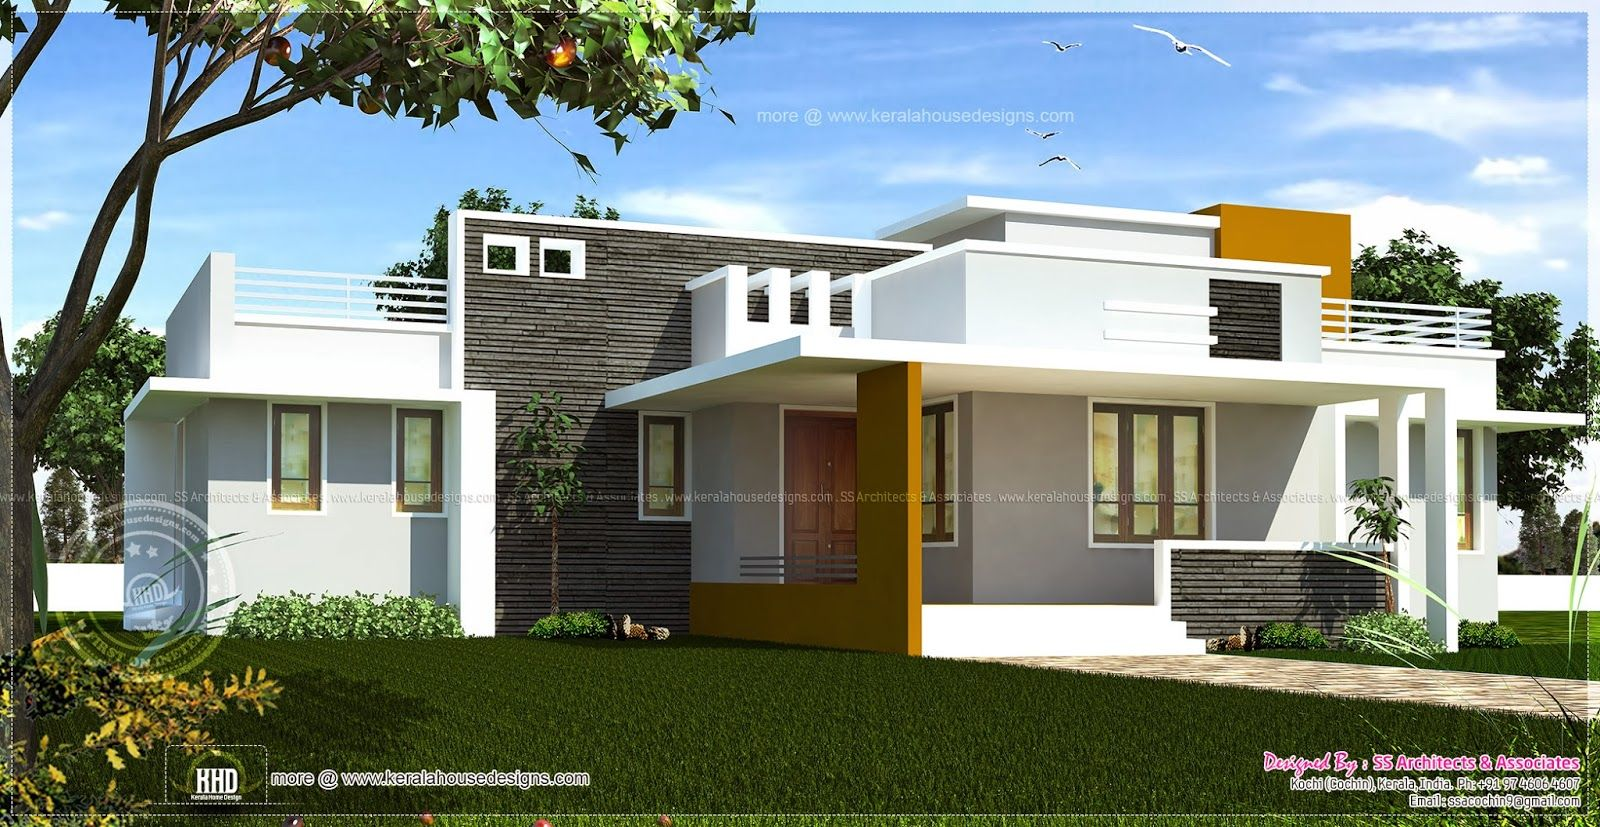 Excellent single home designs single floor contemporary Single story modern house designs